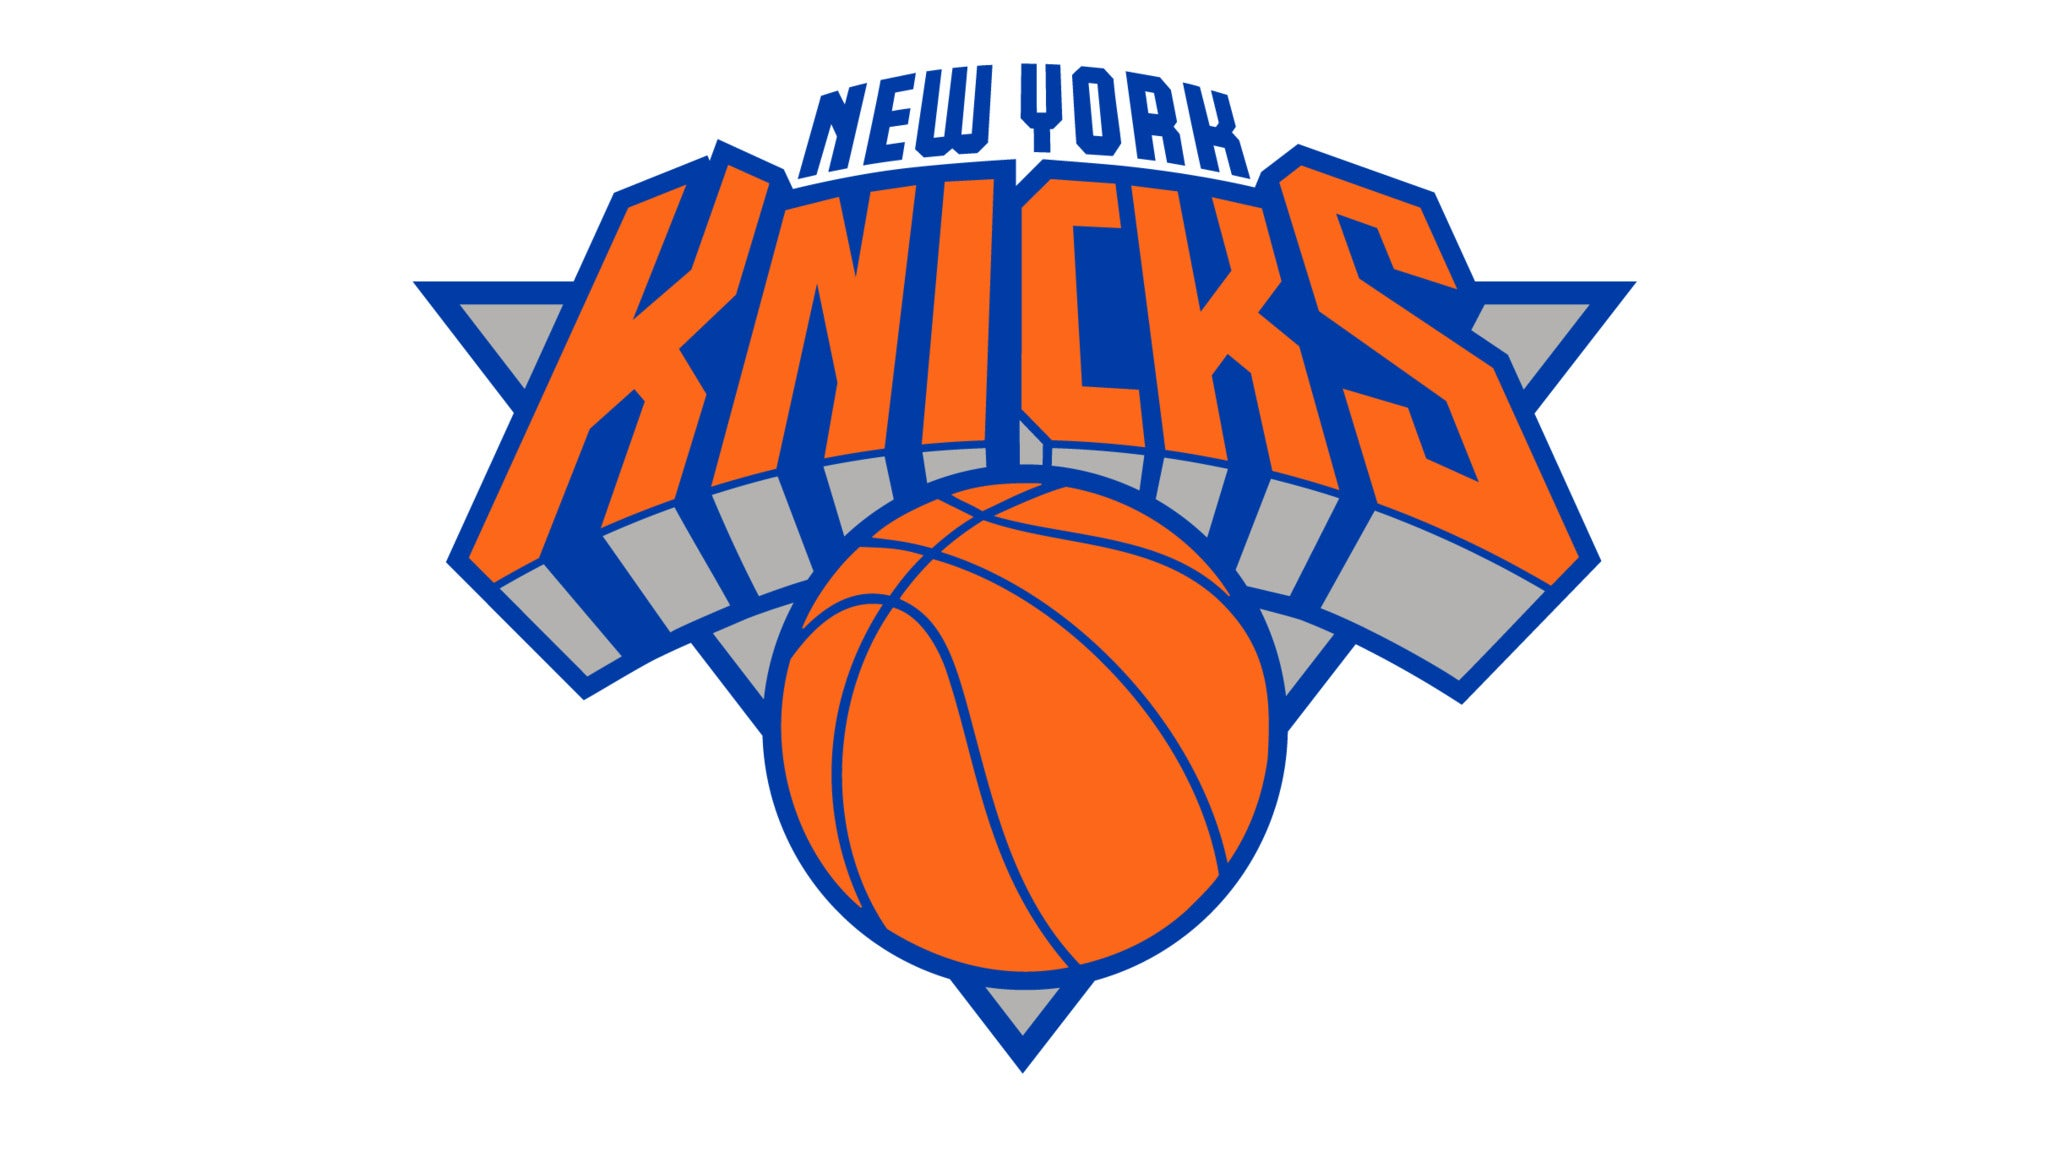 New York Knicks vs. Minnesota Timberwolves